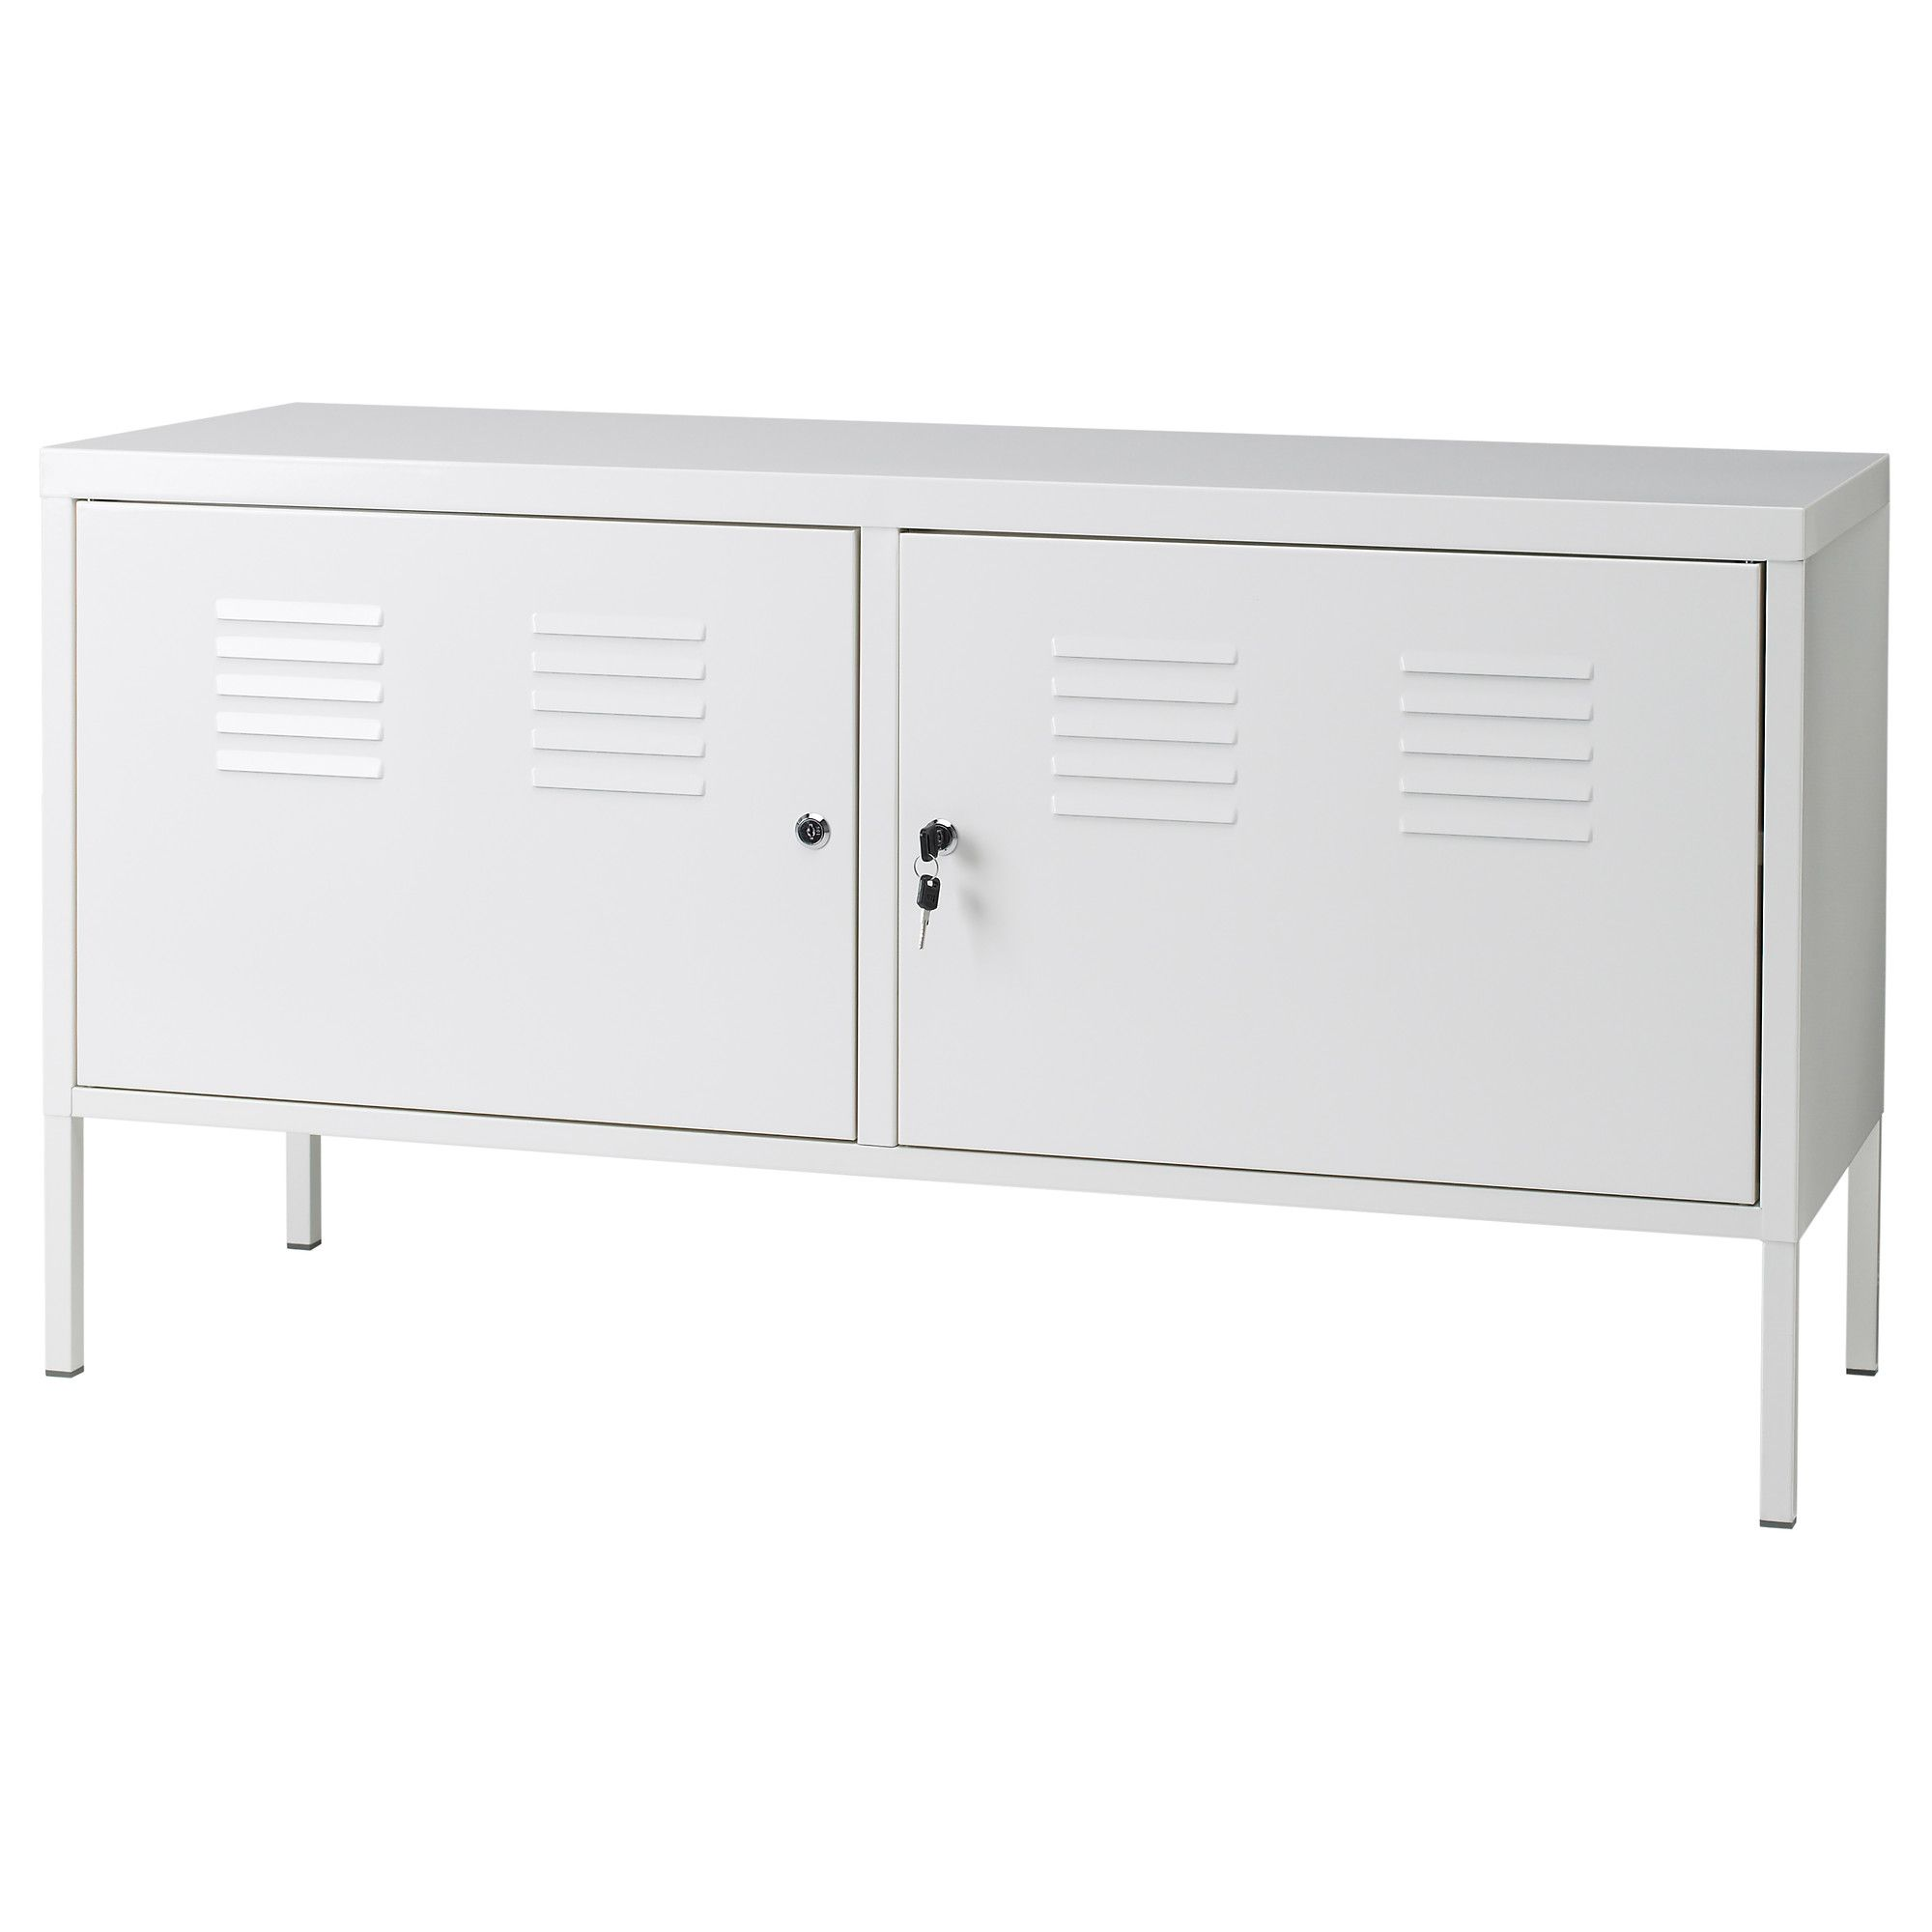 Muebles Metalicos Ikea Ikea Ps Cabinet White Wework Office Space Pinterest Ventas